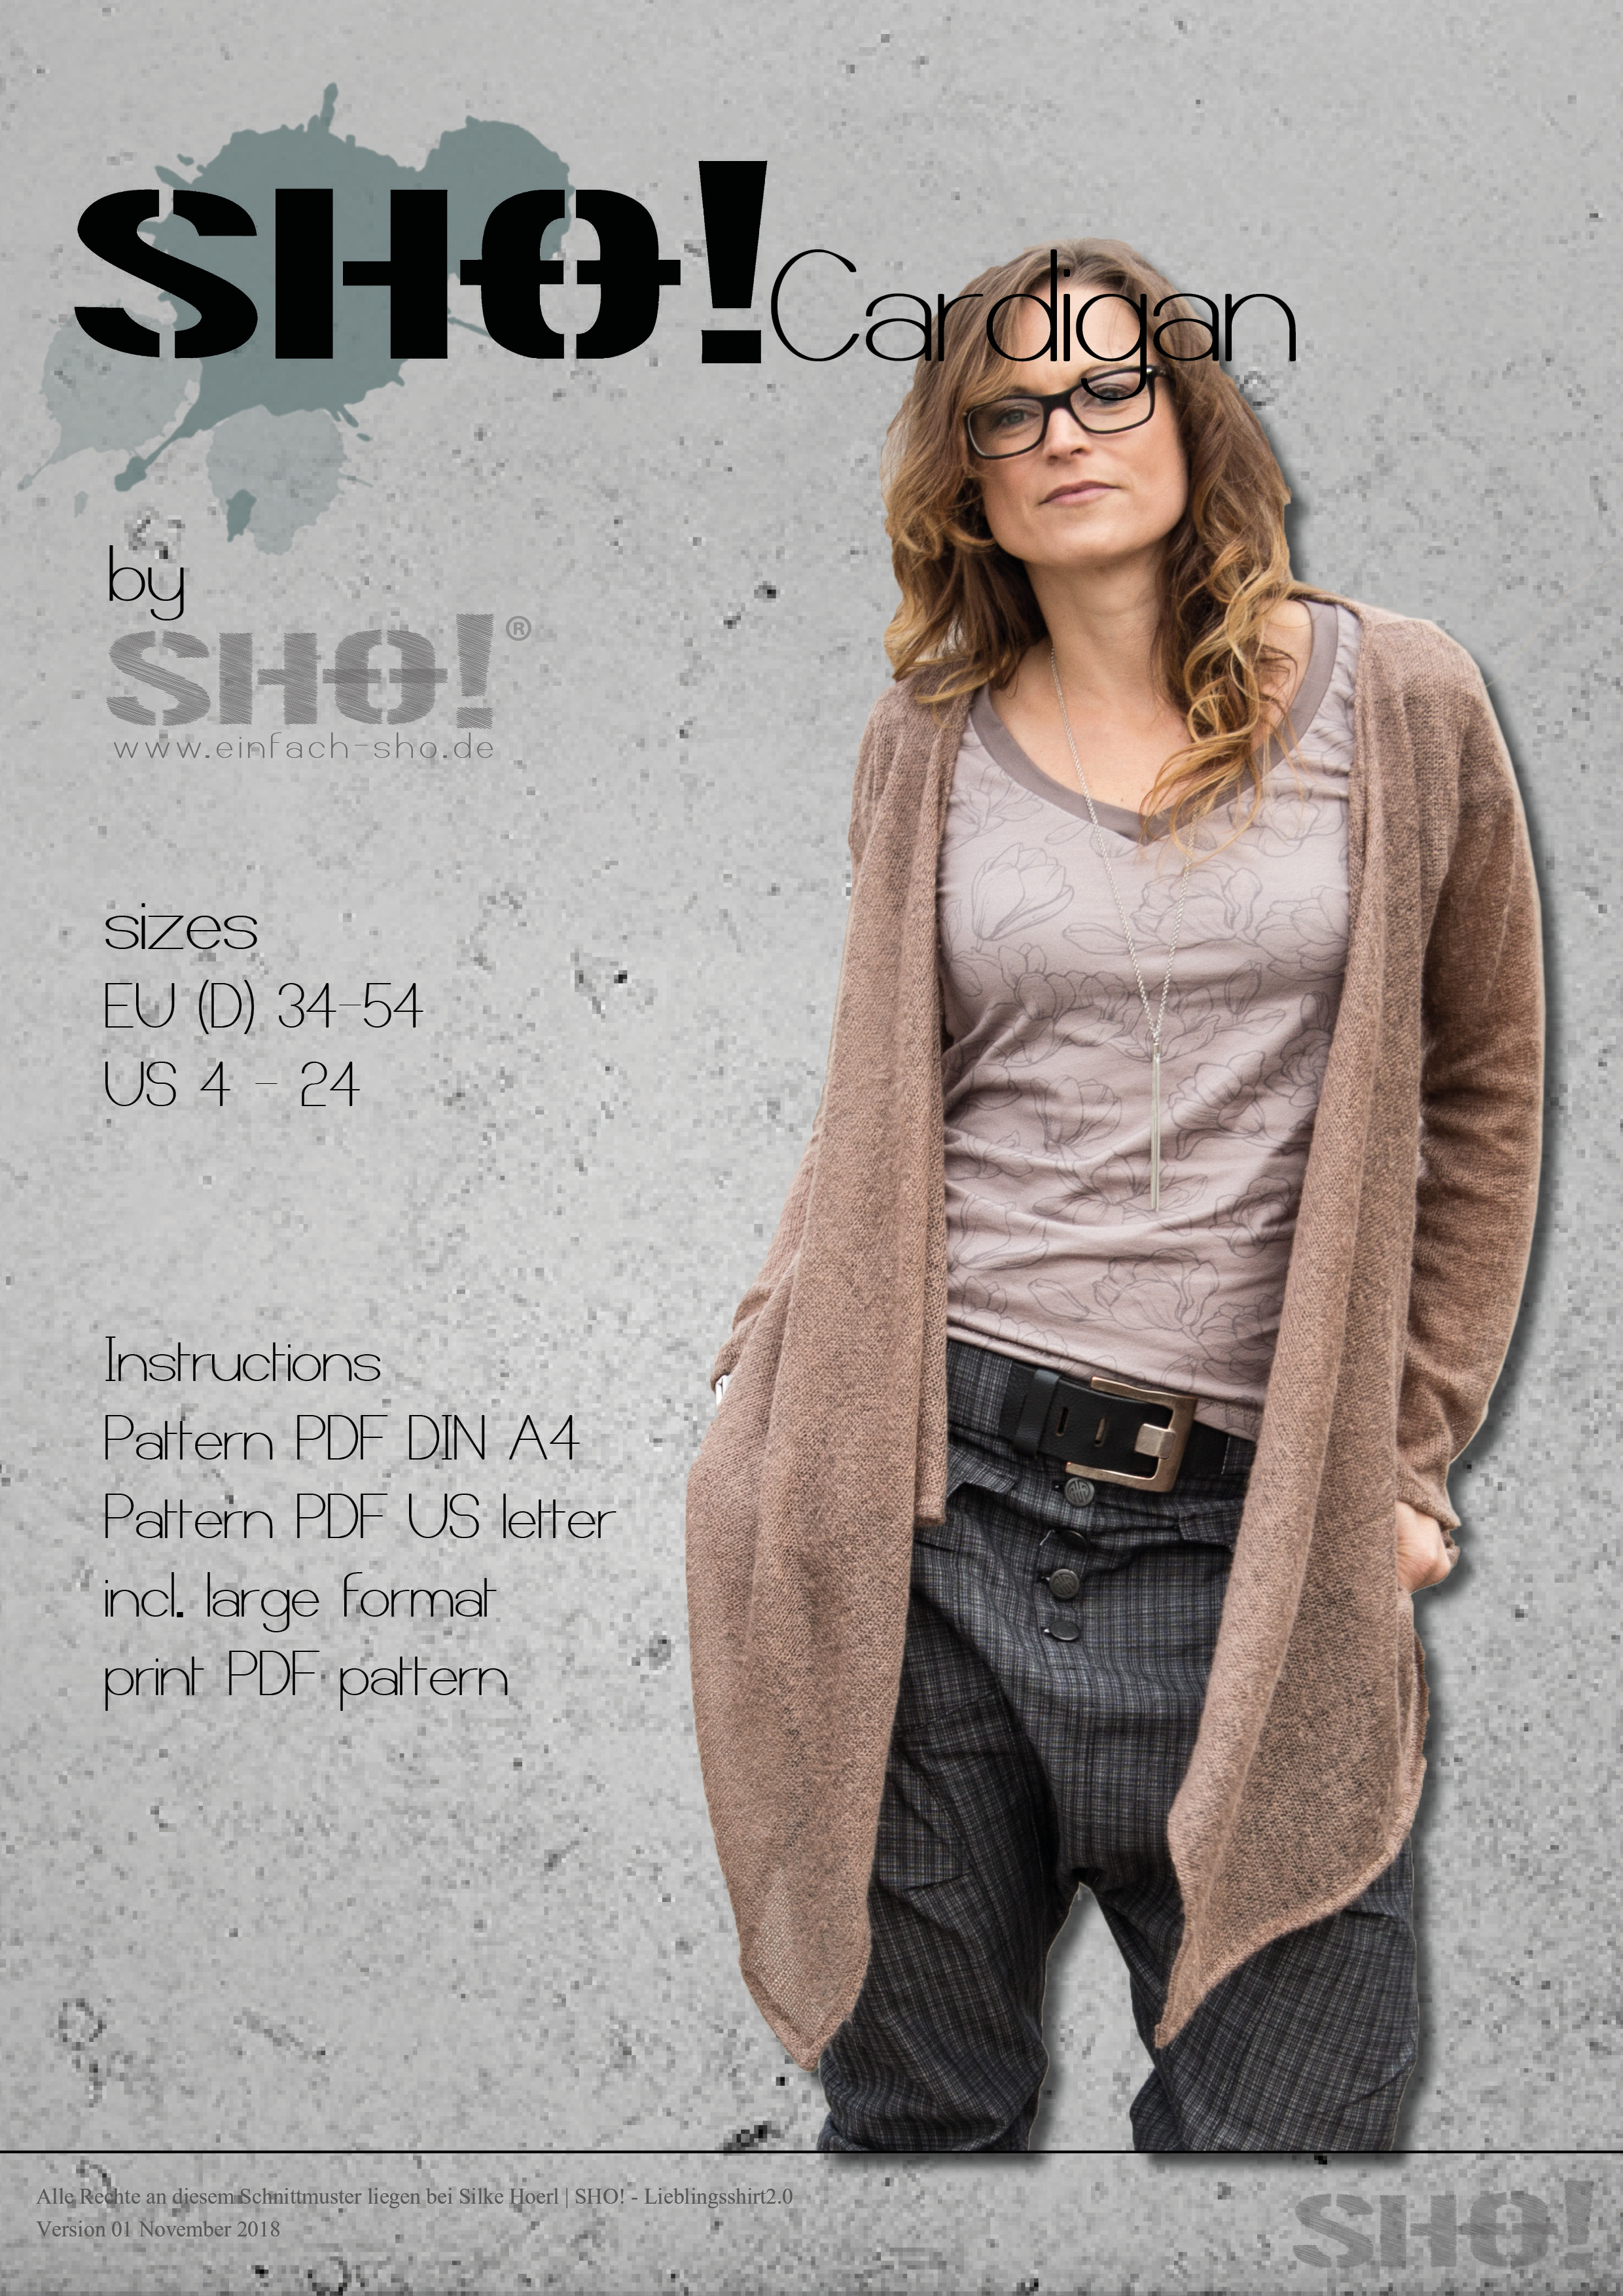 SHO!Cardigan - a must have basic